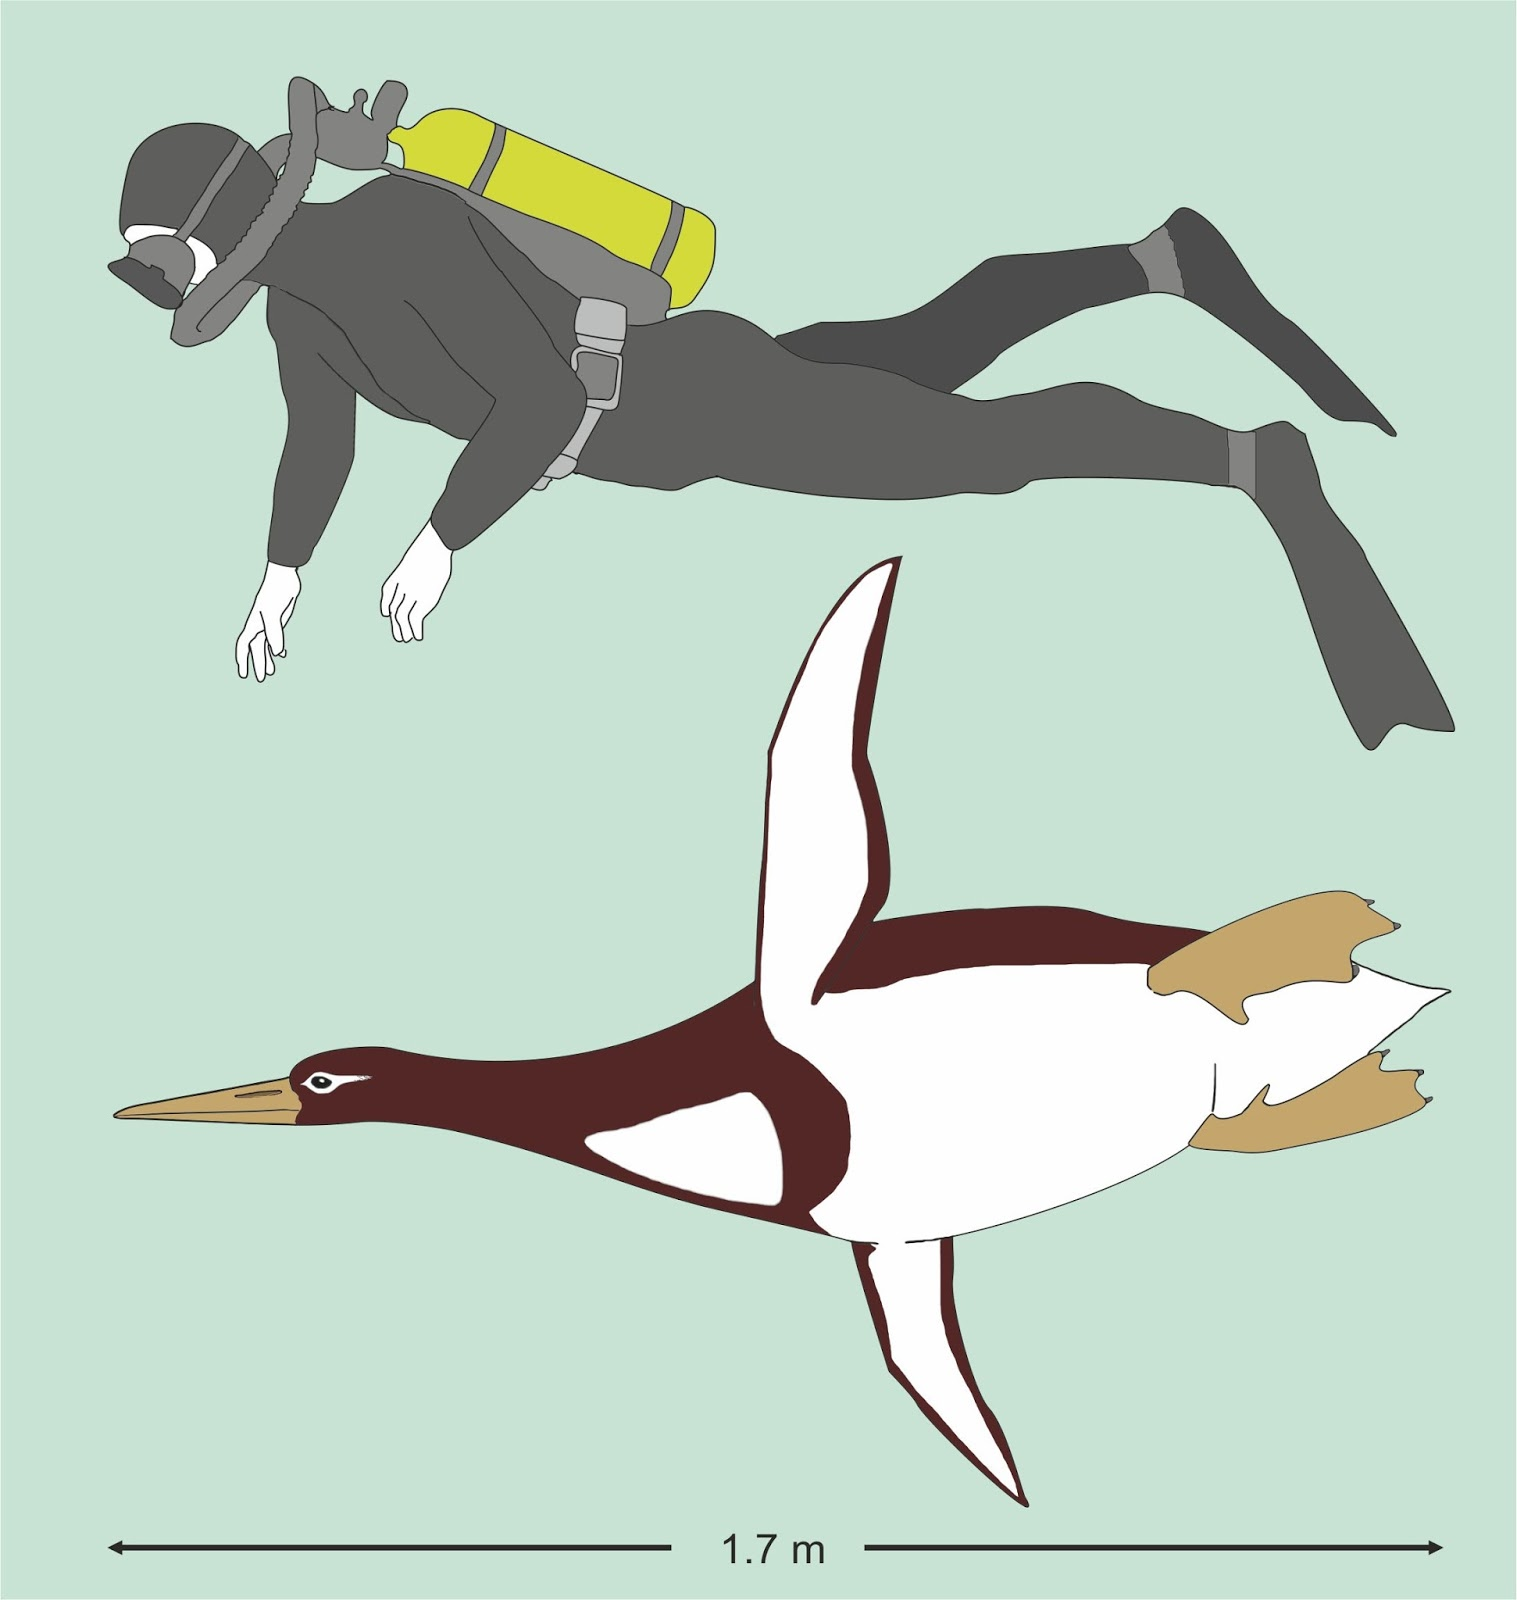 Fossil bones of human-sized penguin found on New Zealand beach